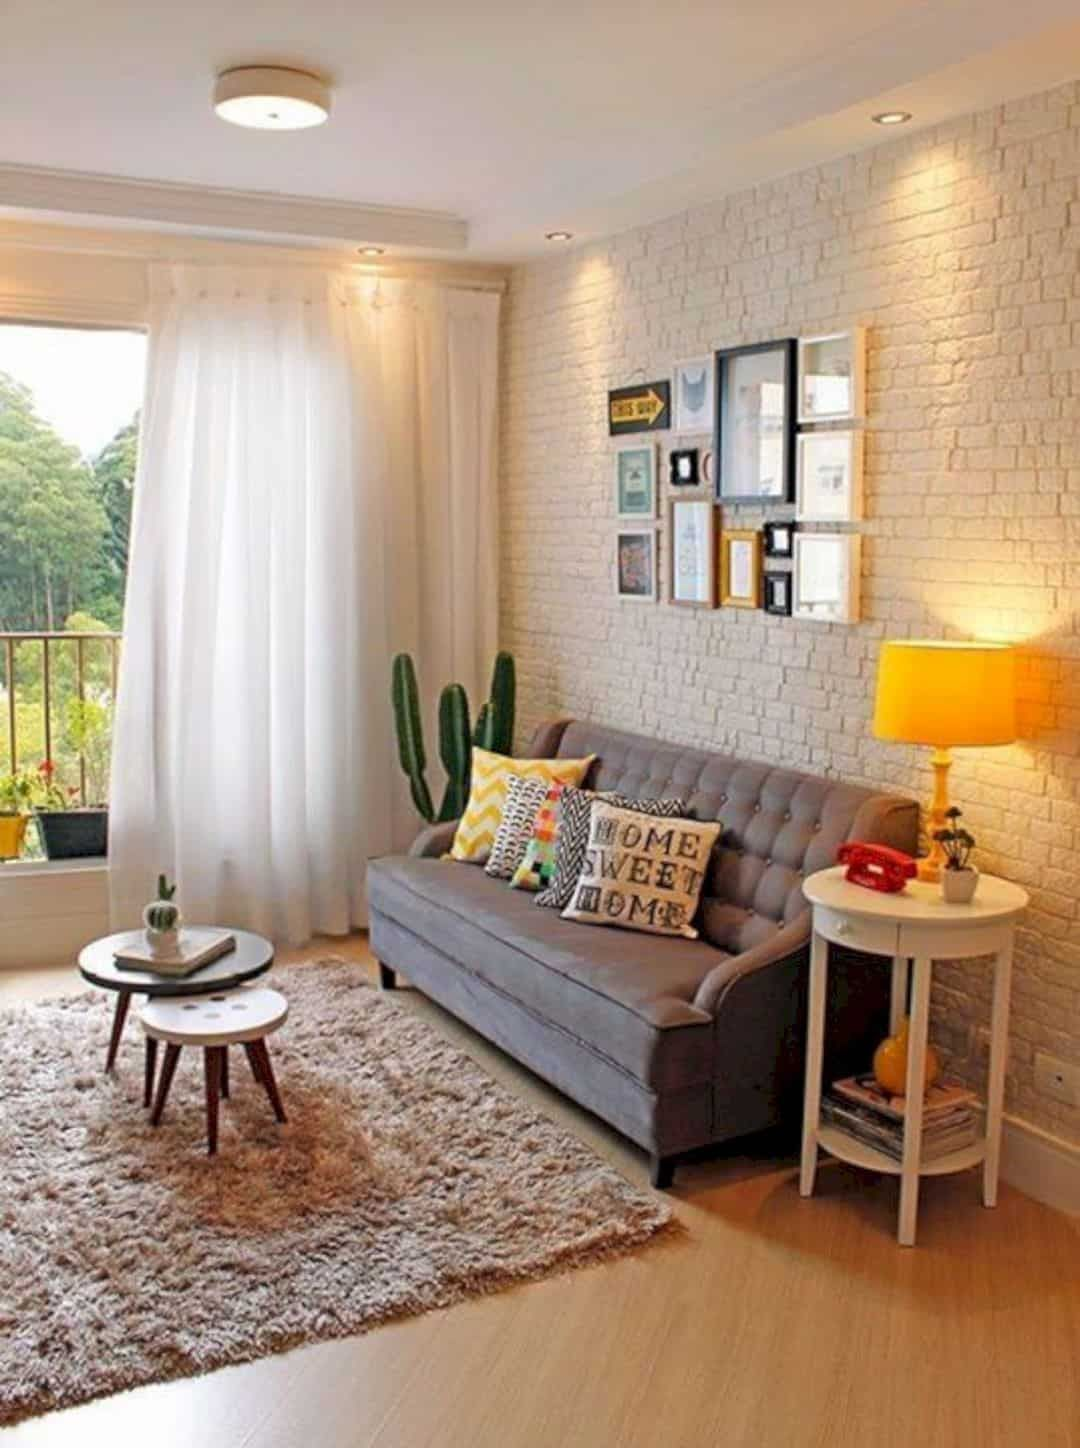 15 shabby chic home decoration ideas to steal  living